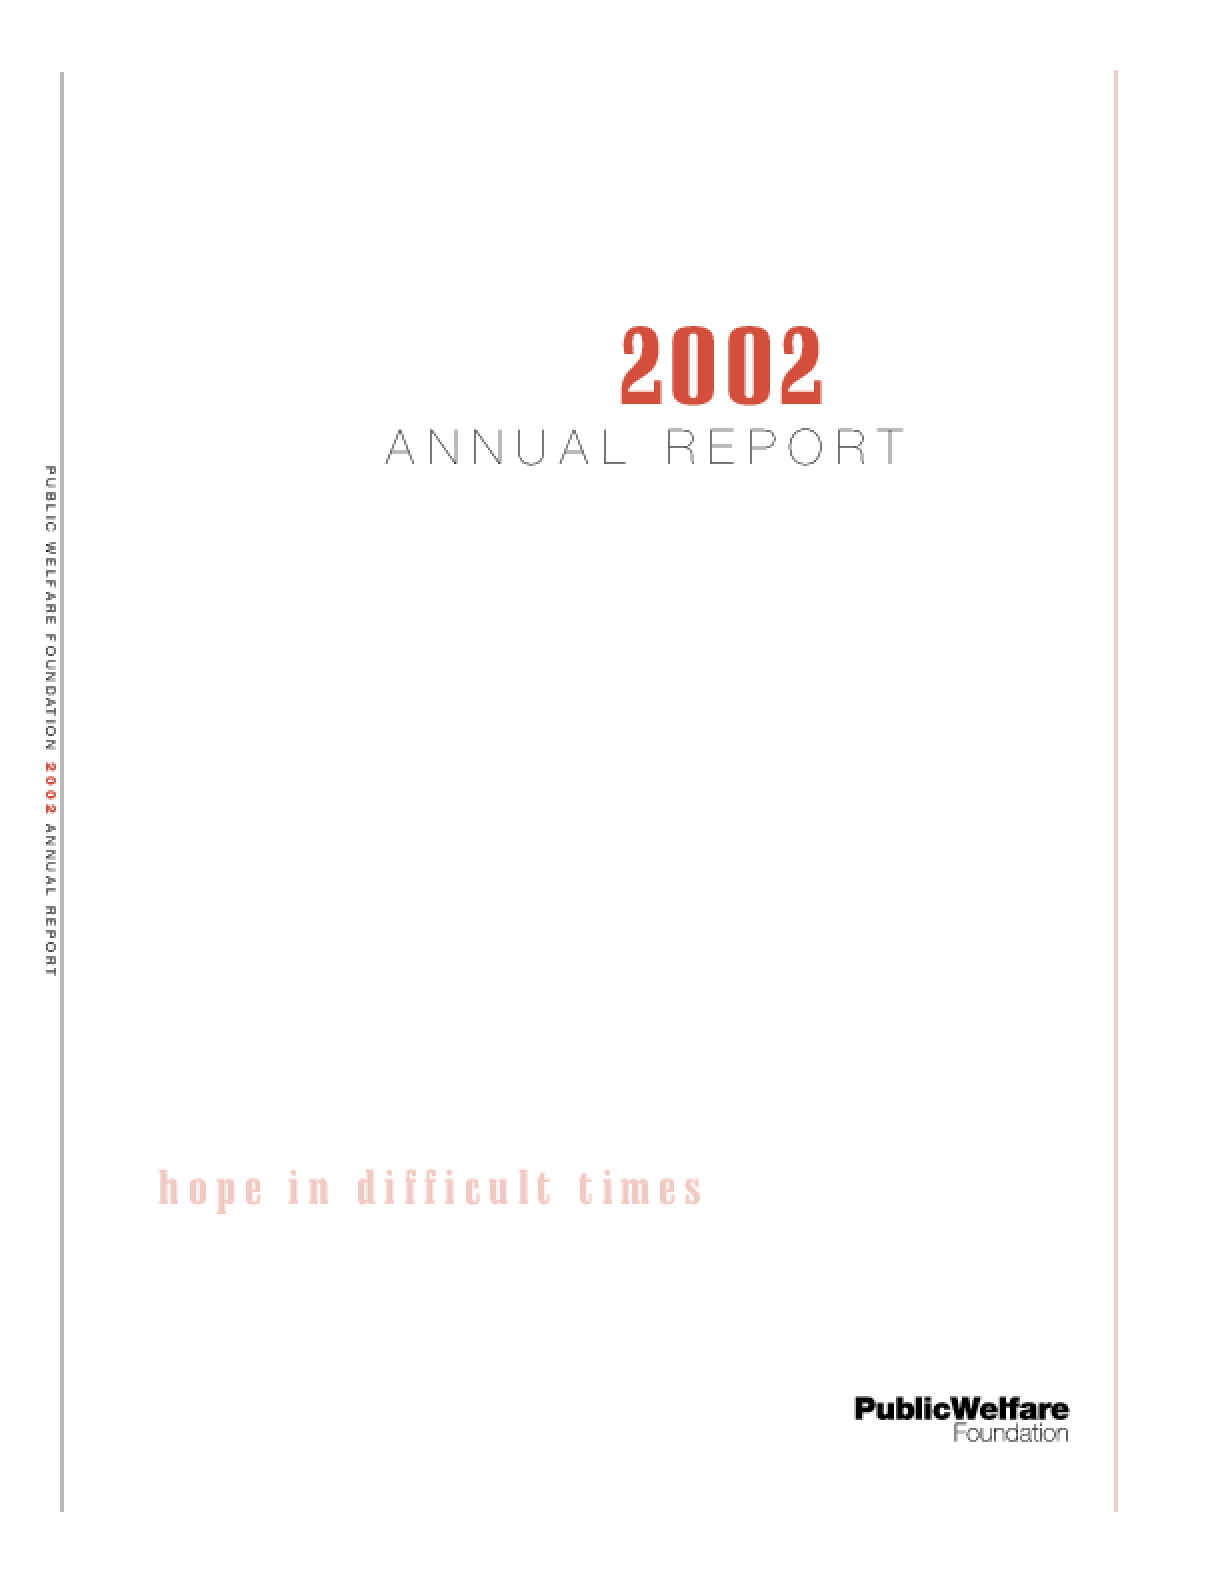 Public Welfare Foundation - 2002 Annual Report